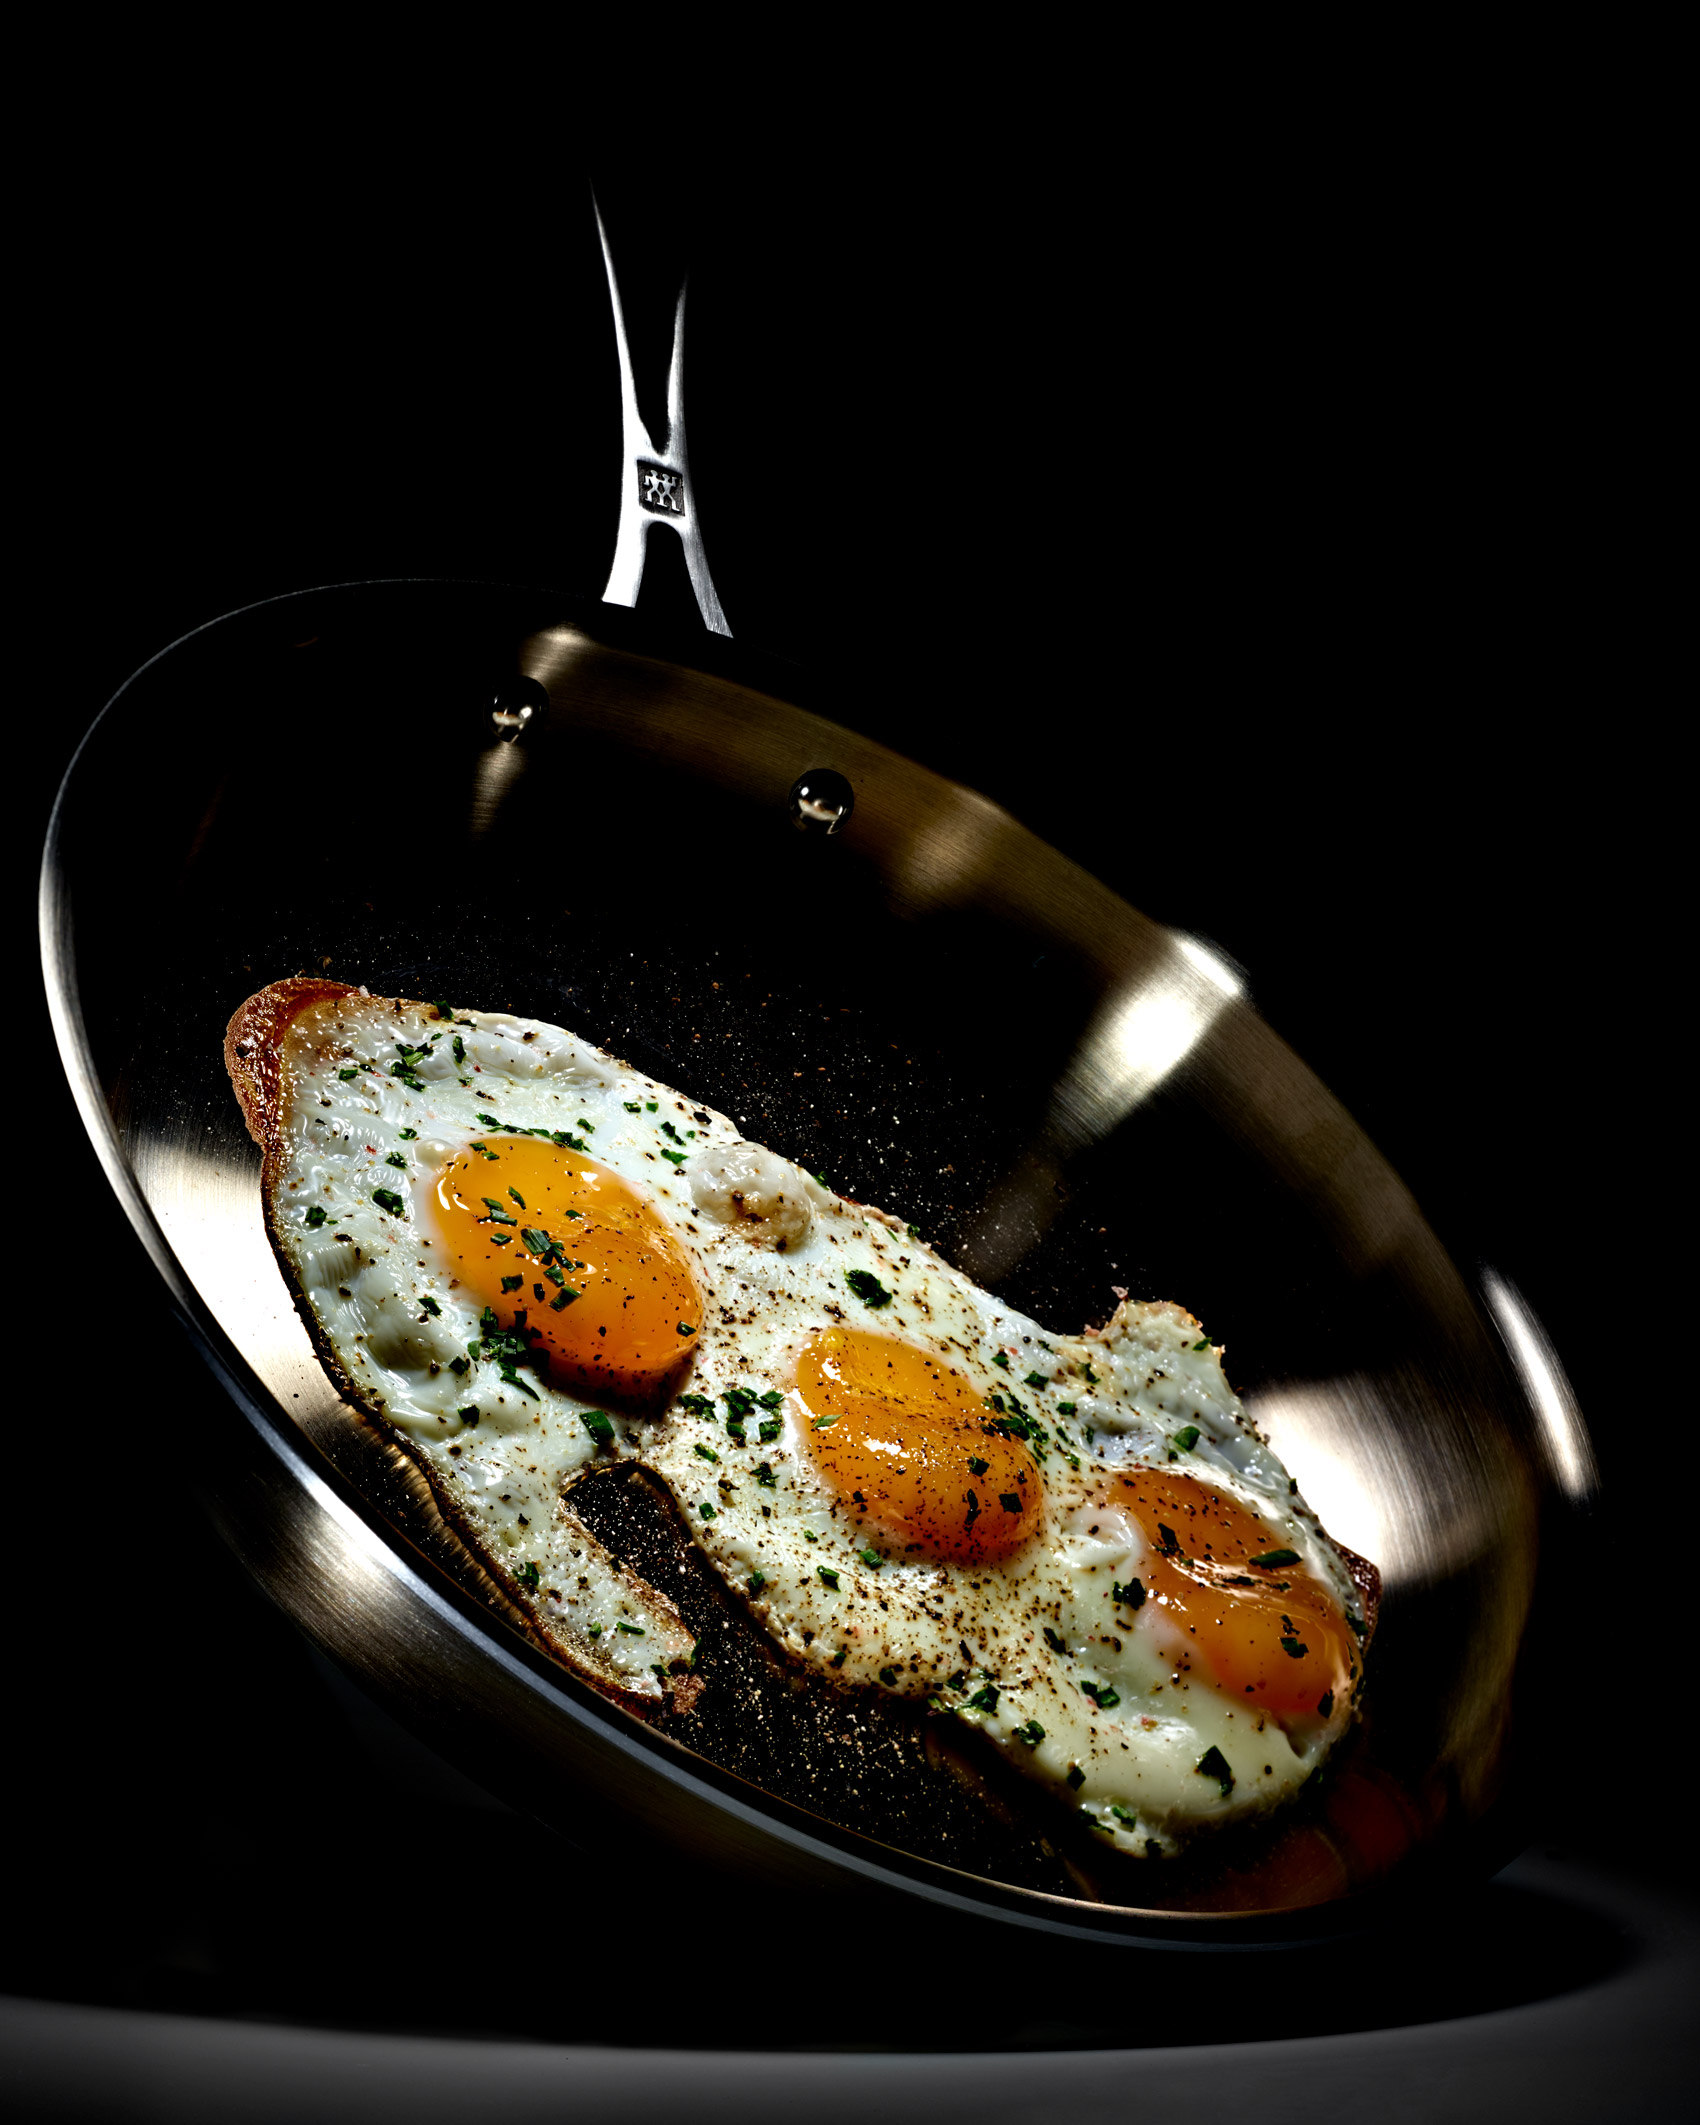 Fried Egg Still Life